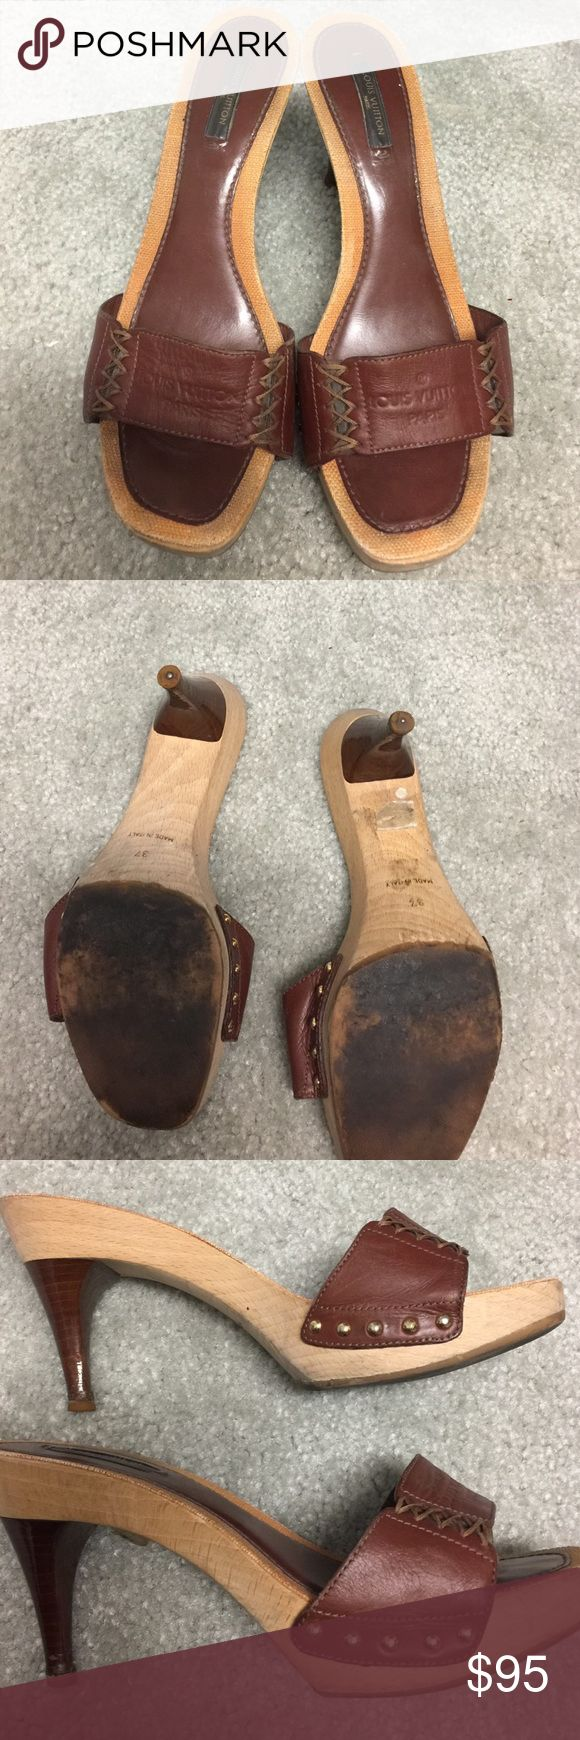 100% Louis Vuitton shoes Used true to size 37 made Italy no box or recibe Louis Vuitton Shoes Heels